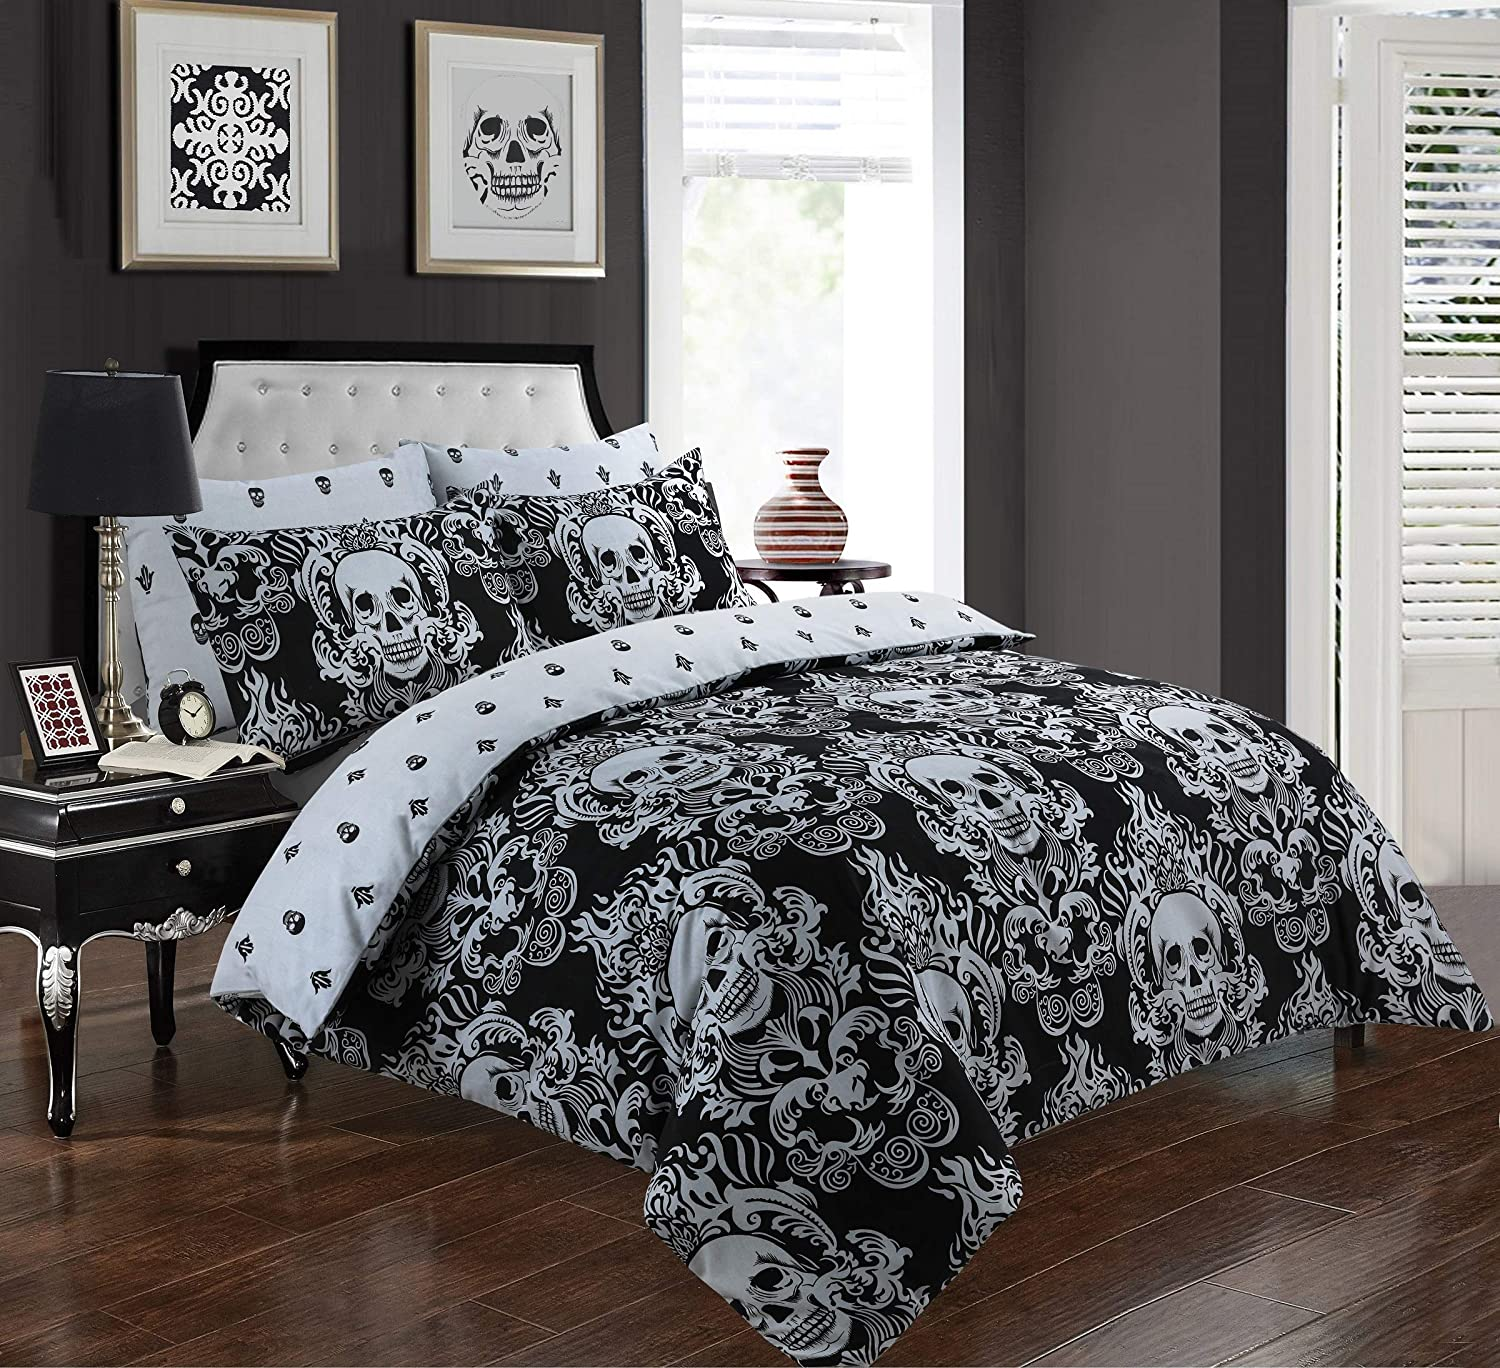 100/% Poly Cotton Duvet Cover Set /& Pillowcases Bedding All Bed UK Size